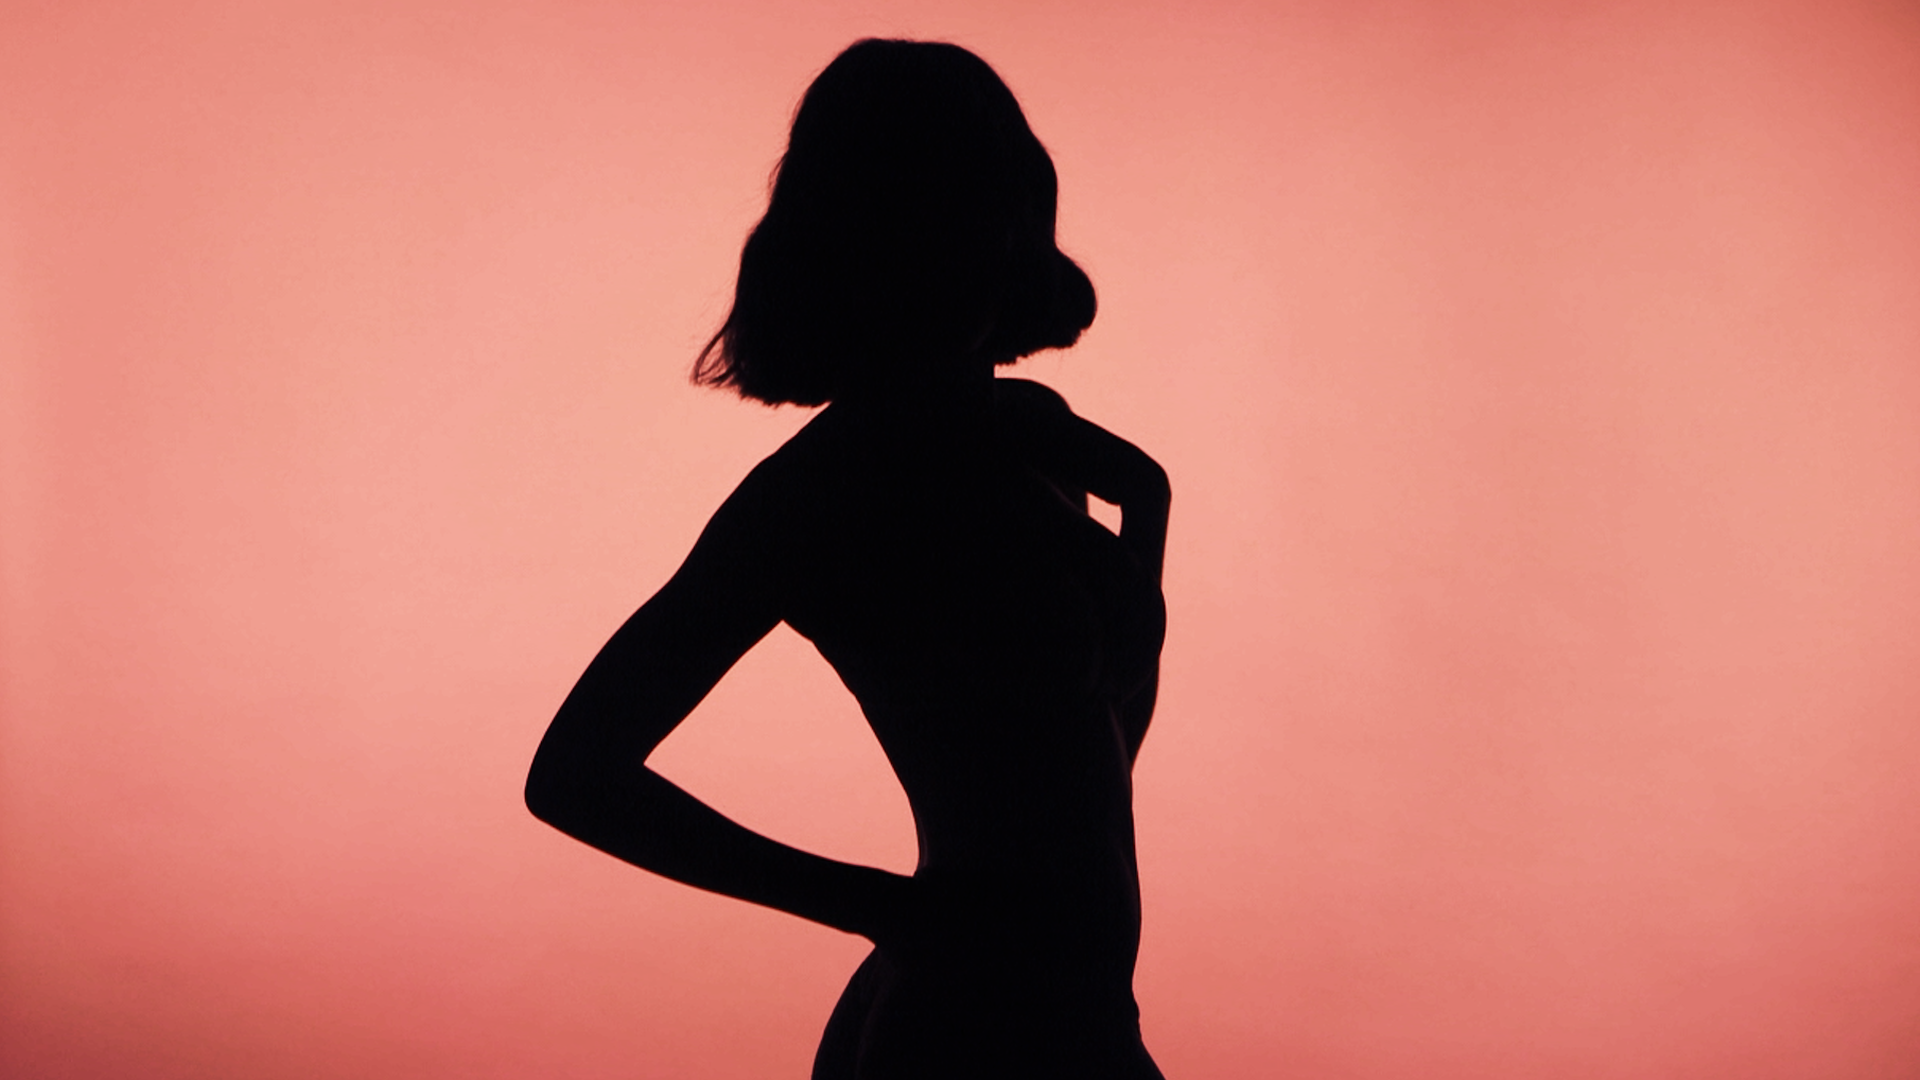 Silhouette of woman on pink background